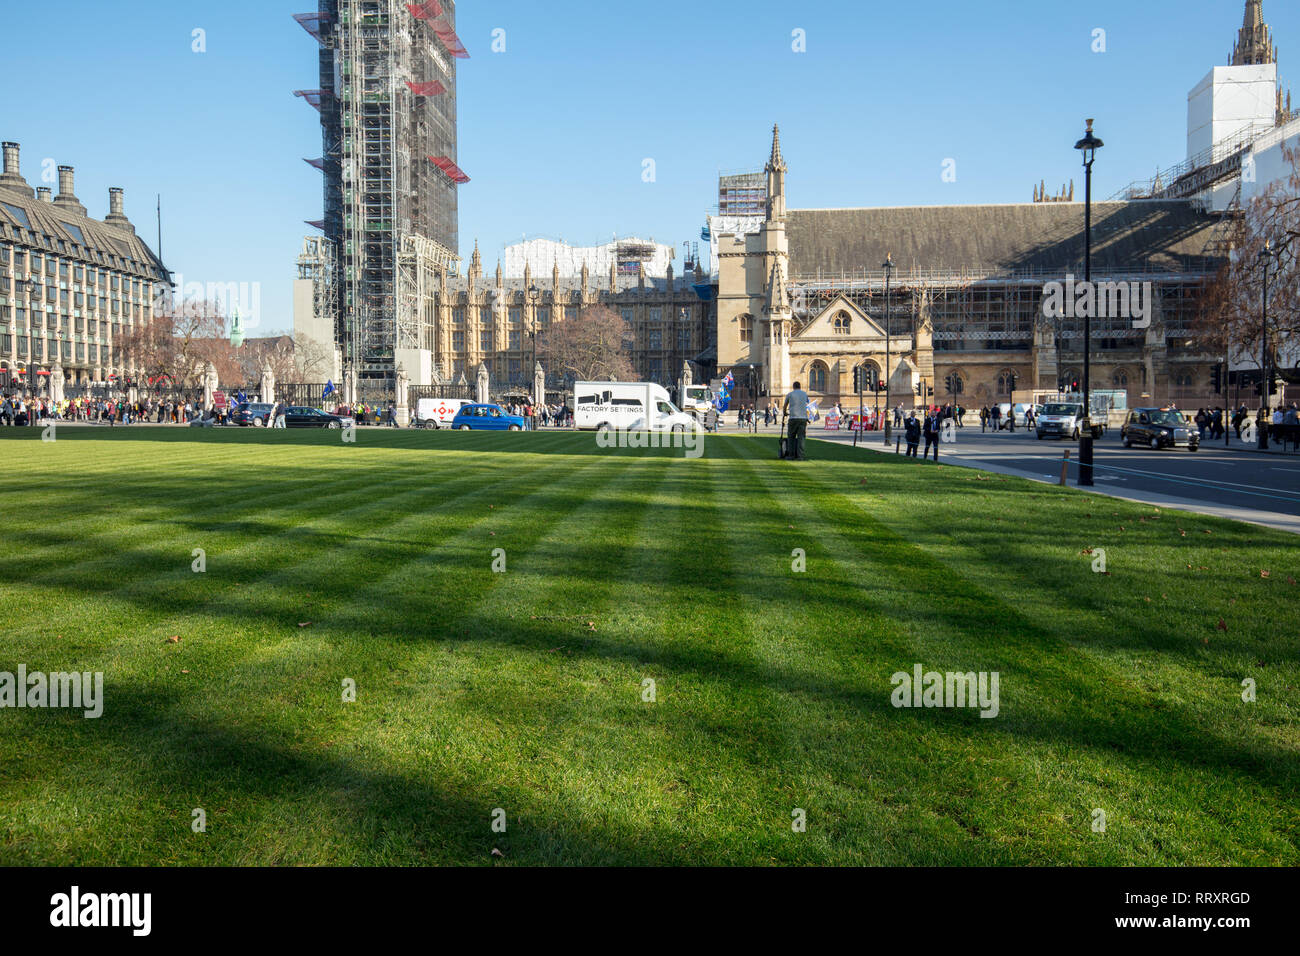 After renewing the lawn on Parliament Square, a subcontractor and landscaper cuts the lawn with a petrol lawn mower, creating an even surface of lawn. - Stock Image